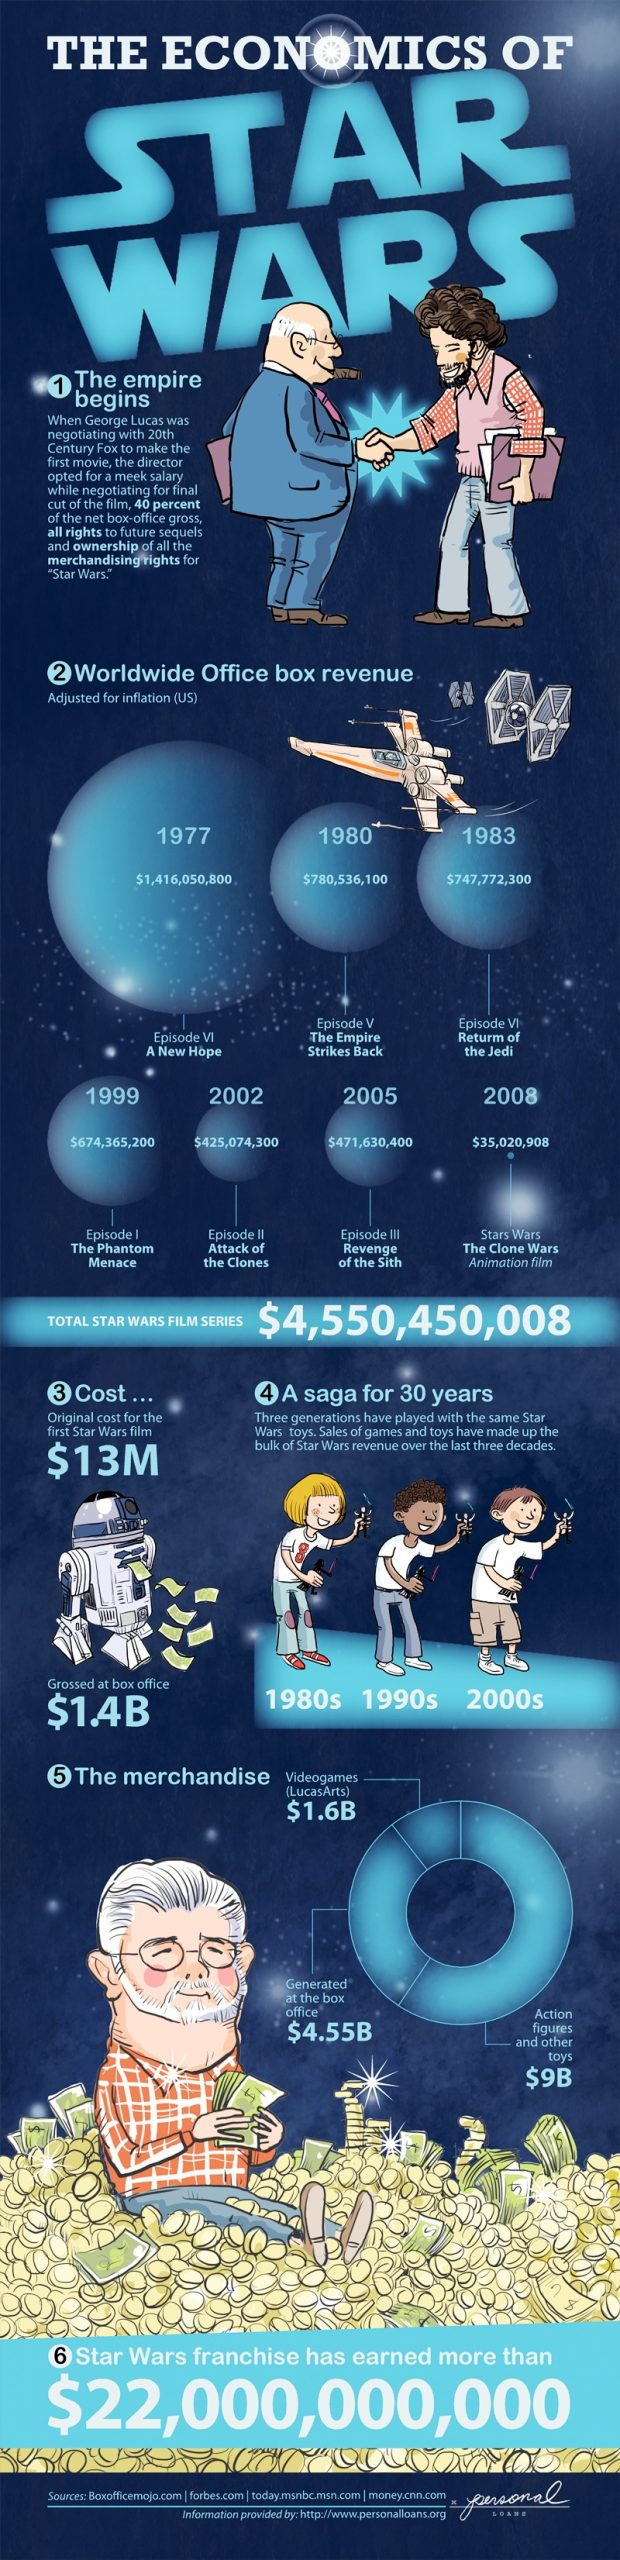 Star Wars Financing Infographic